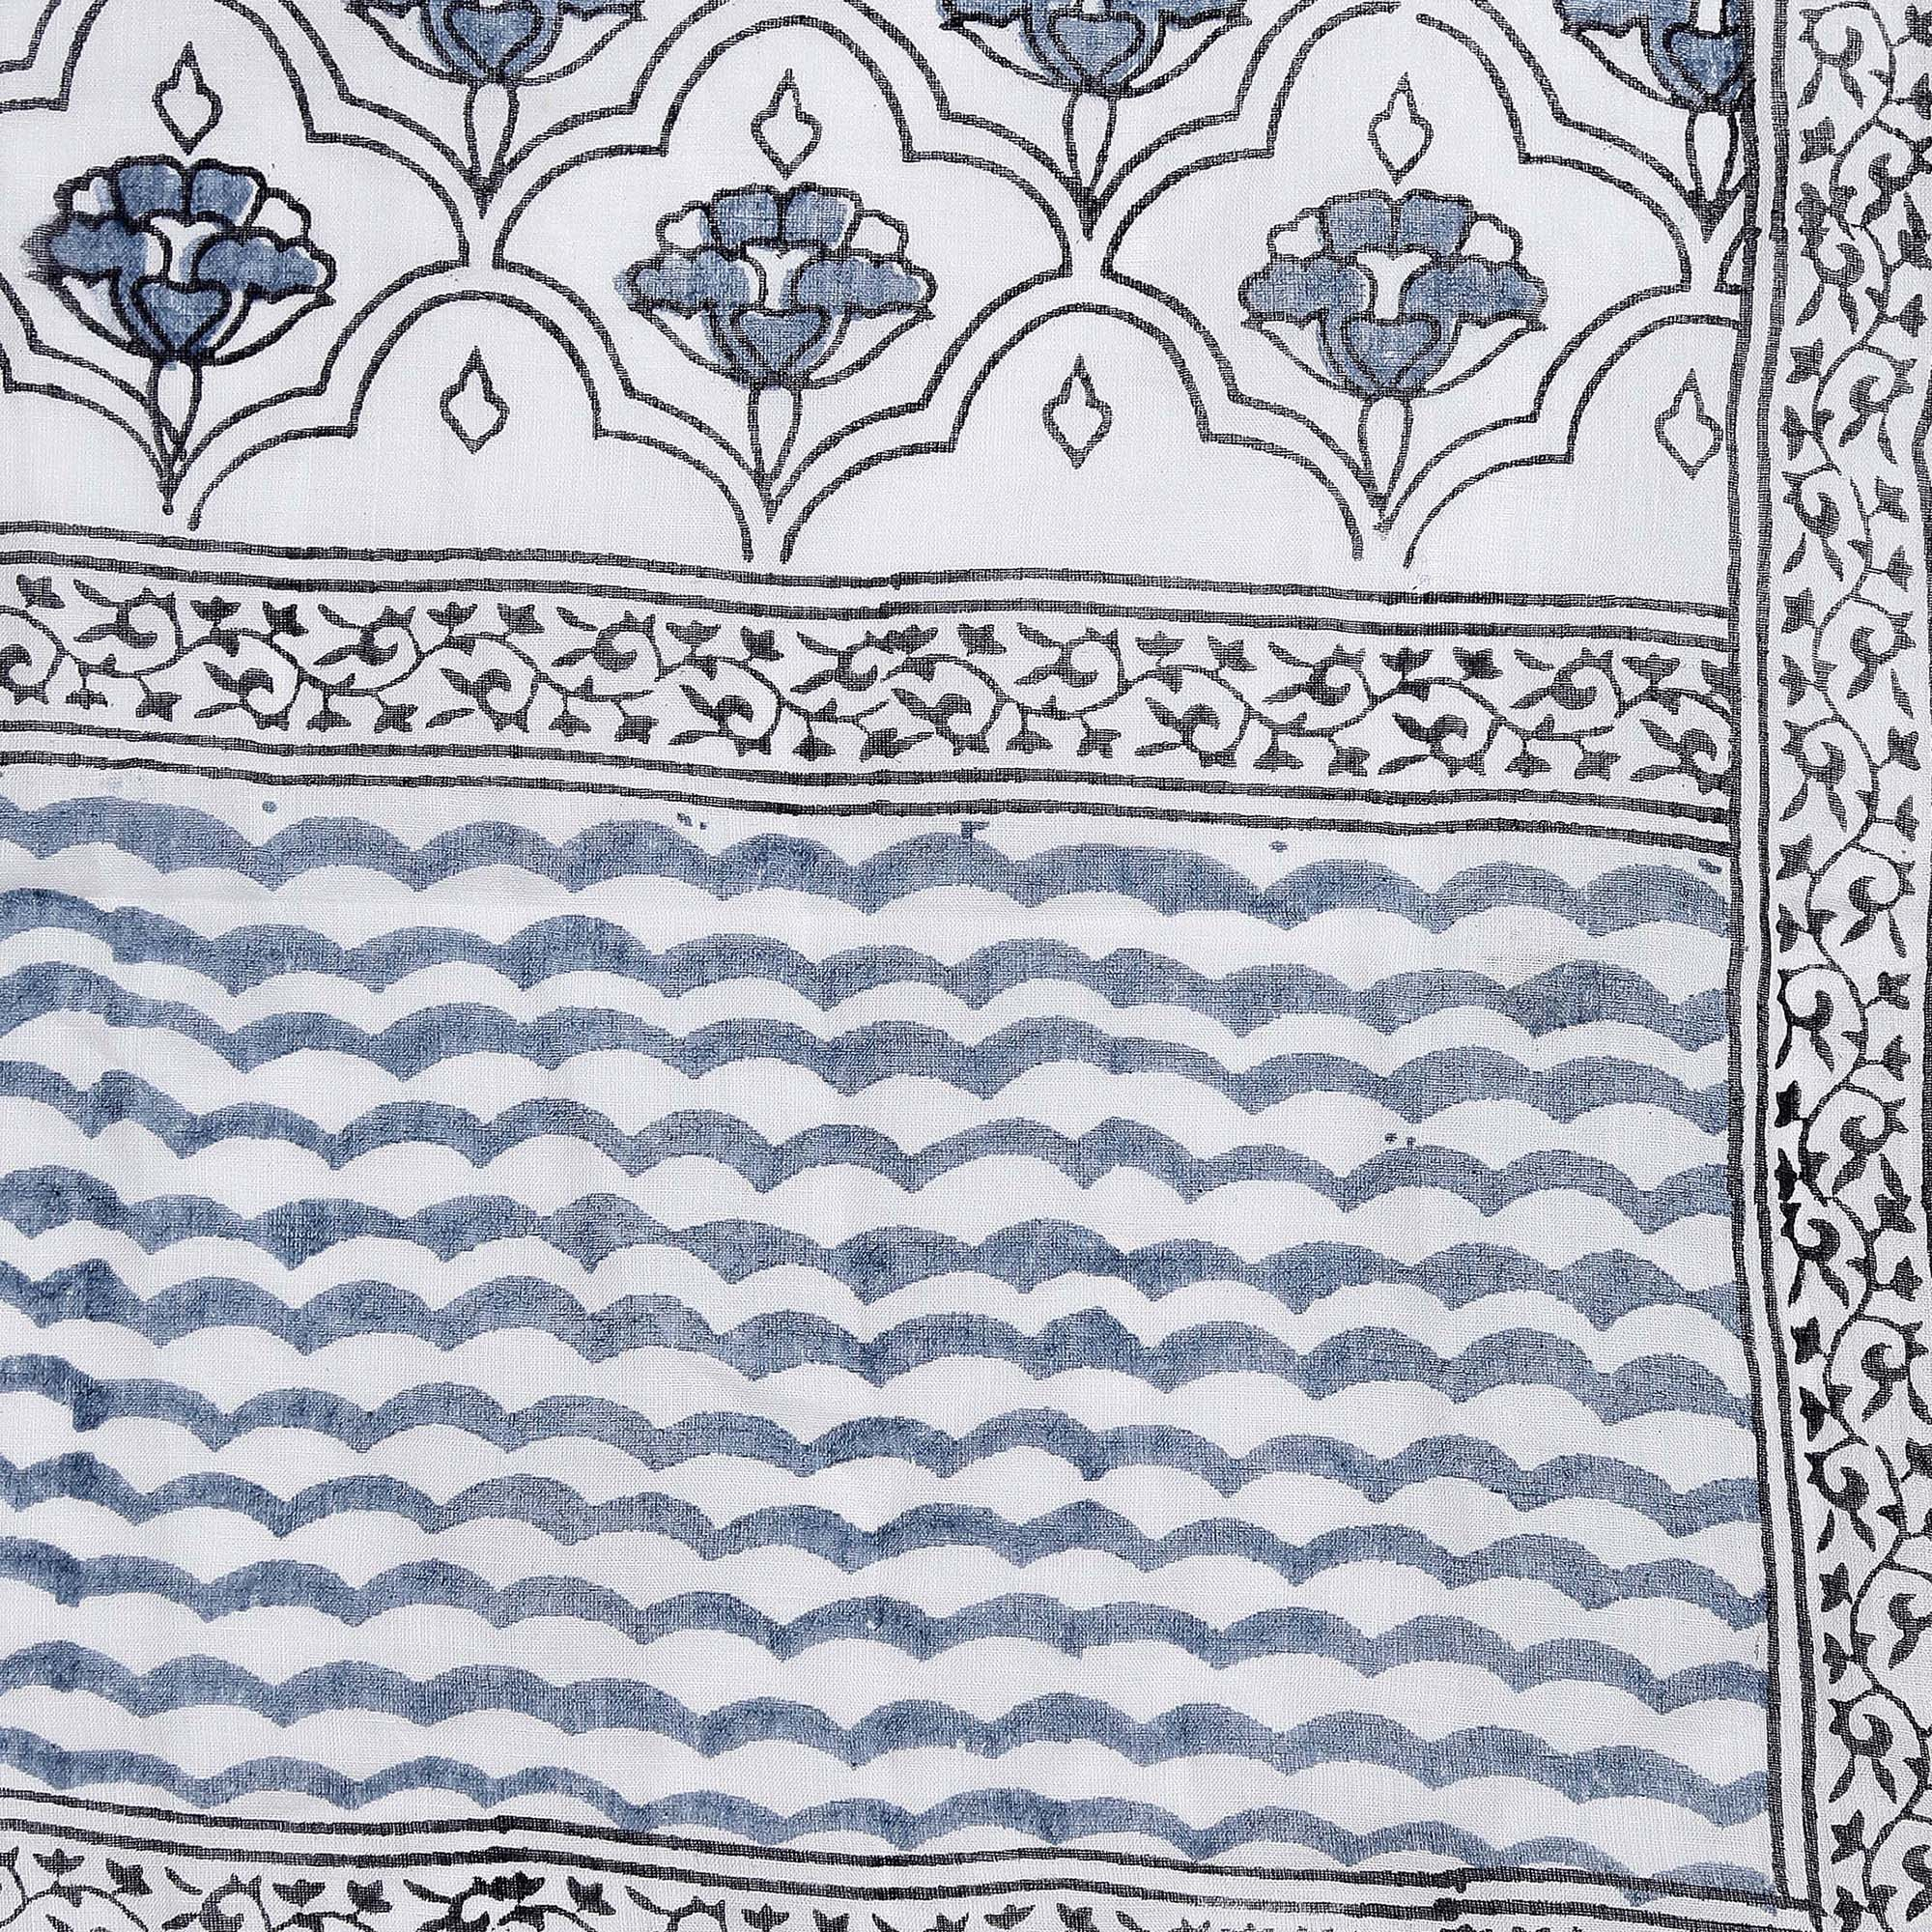 White & Blue Hand block Print Handcrafted Cotton Saree-Saree-Kalakari India-BAPASA0088-Cotton, Dabu, Geographical Indication, Hand Blocks, Hand Crafted, Heritage Prints, Sarees, Sustainable Fabrics-[Linen,Ethnic,wear,Fashionista,Handloom,Handicraft,Indigo,blockprint,block,print,Cotton,Chanderi,Blue, latest,classy,party,bollywood,trendy,summer,style,traditional,formal,elegant,unique,style,hand,block,print, dabu,booti,gift,present,glamorous,affordable,collectible,Sari,Saree,printed, holi, Diwali,